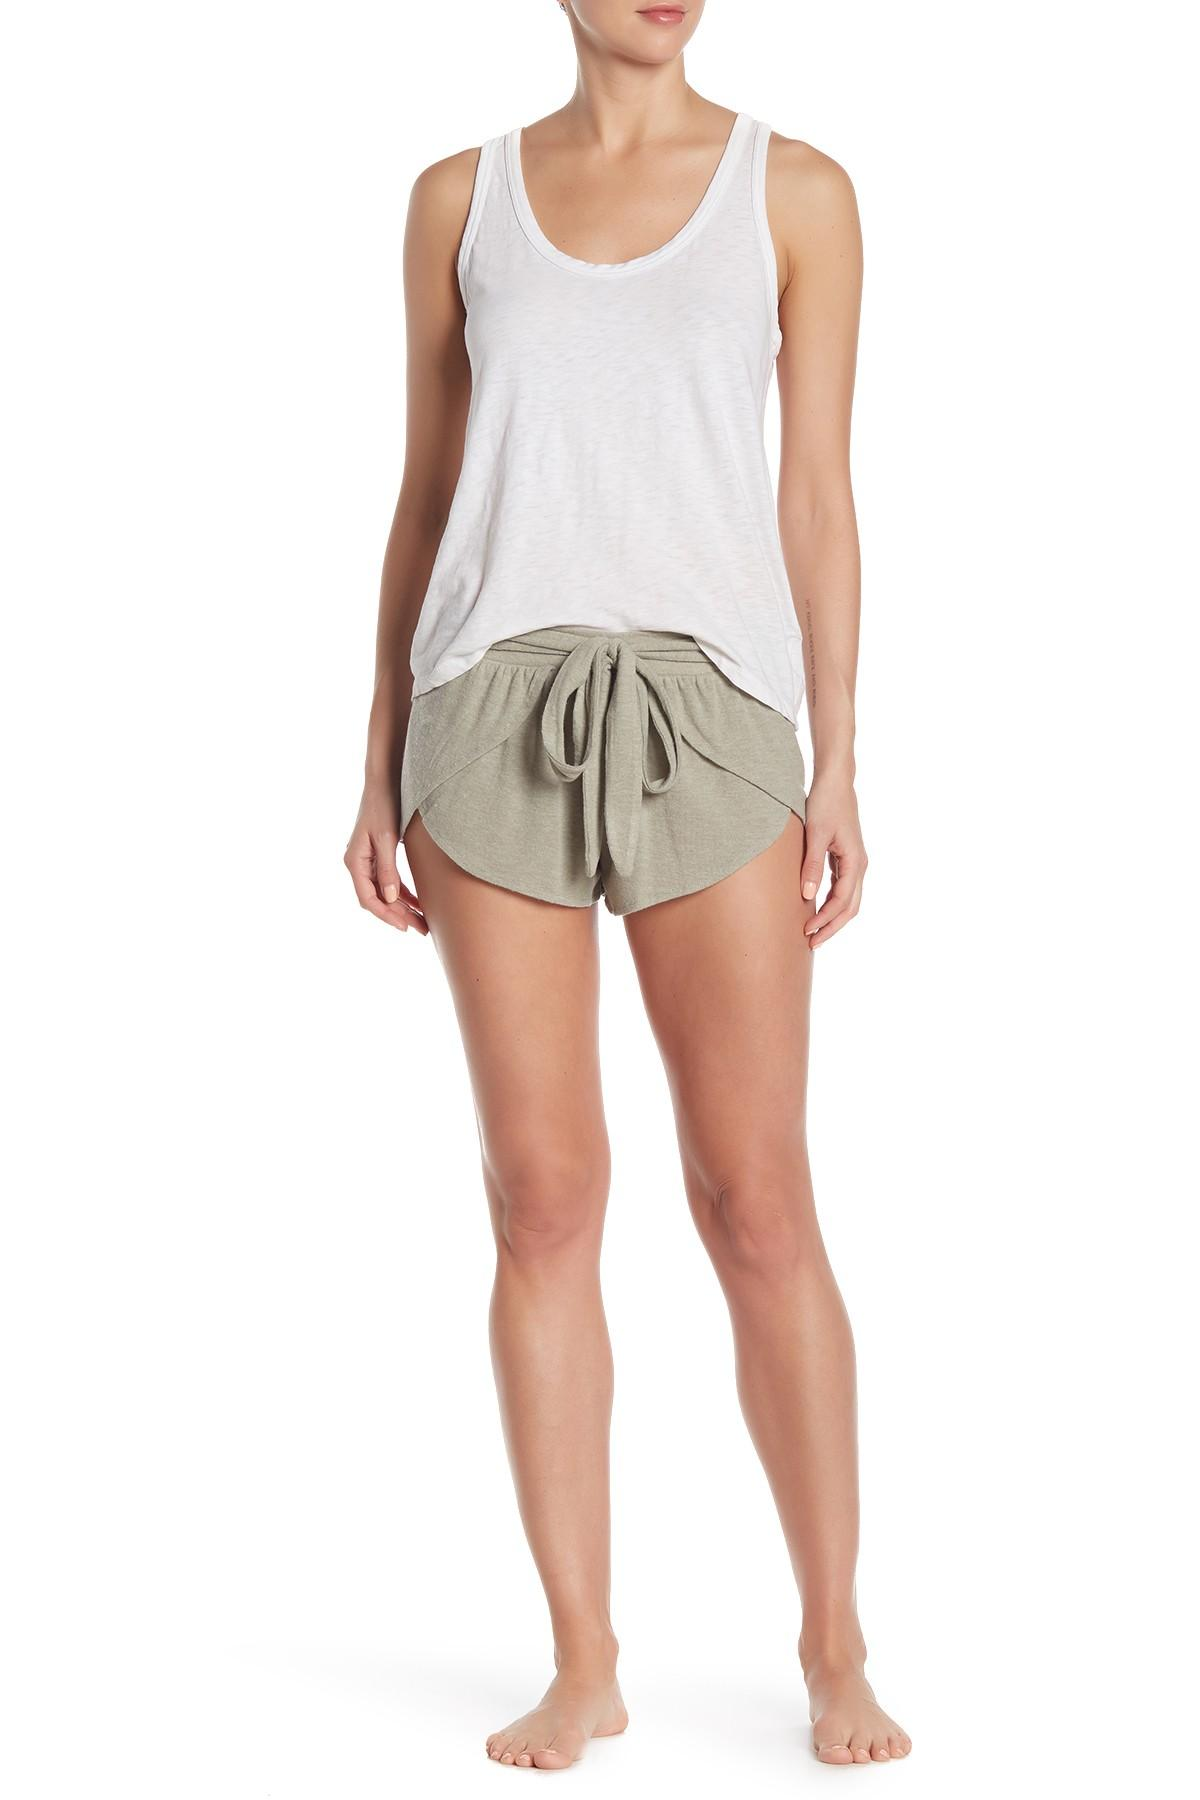 5abe55be50df Honeydew Intimates - Multicolor Luxe Lounge Shorts - Lyst. View fullscreen